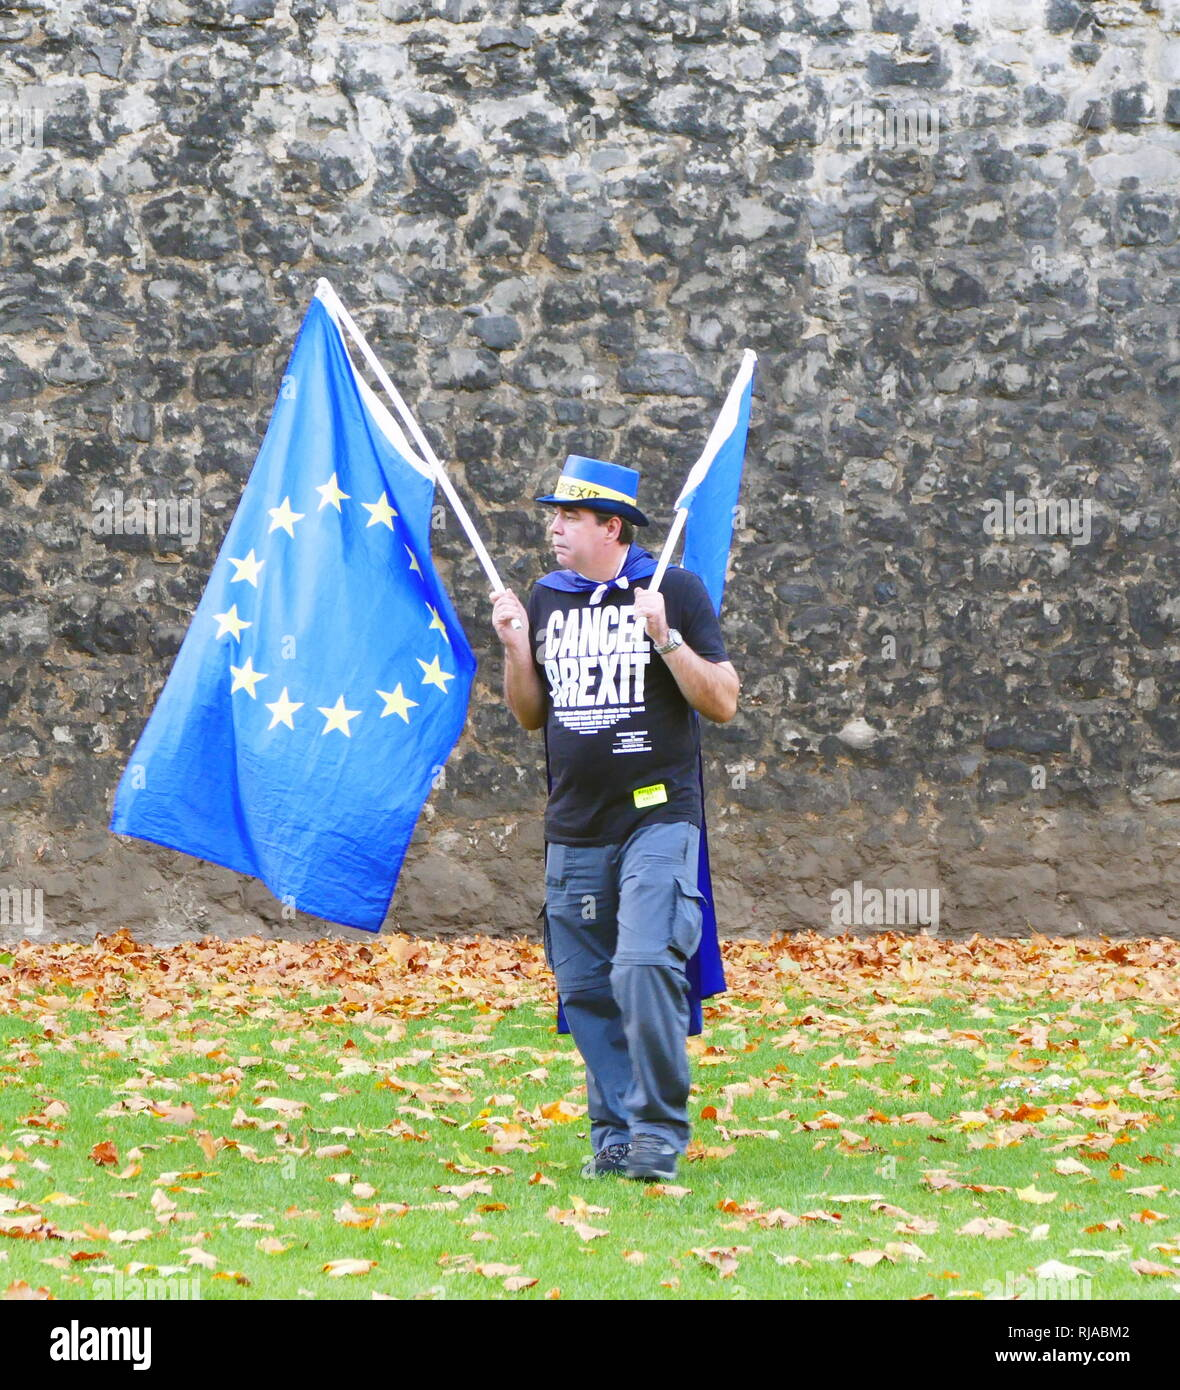 Solitary protester carrying European Union flags opposite the British Parliament, protests against the Brexit vote after the 2016 Referendum in which the United Kingdom voted to leave the EU. - Stock Image